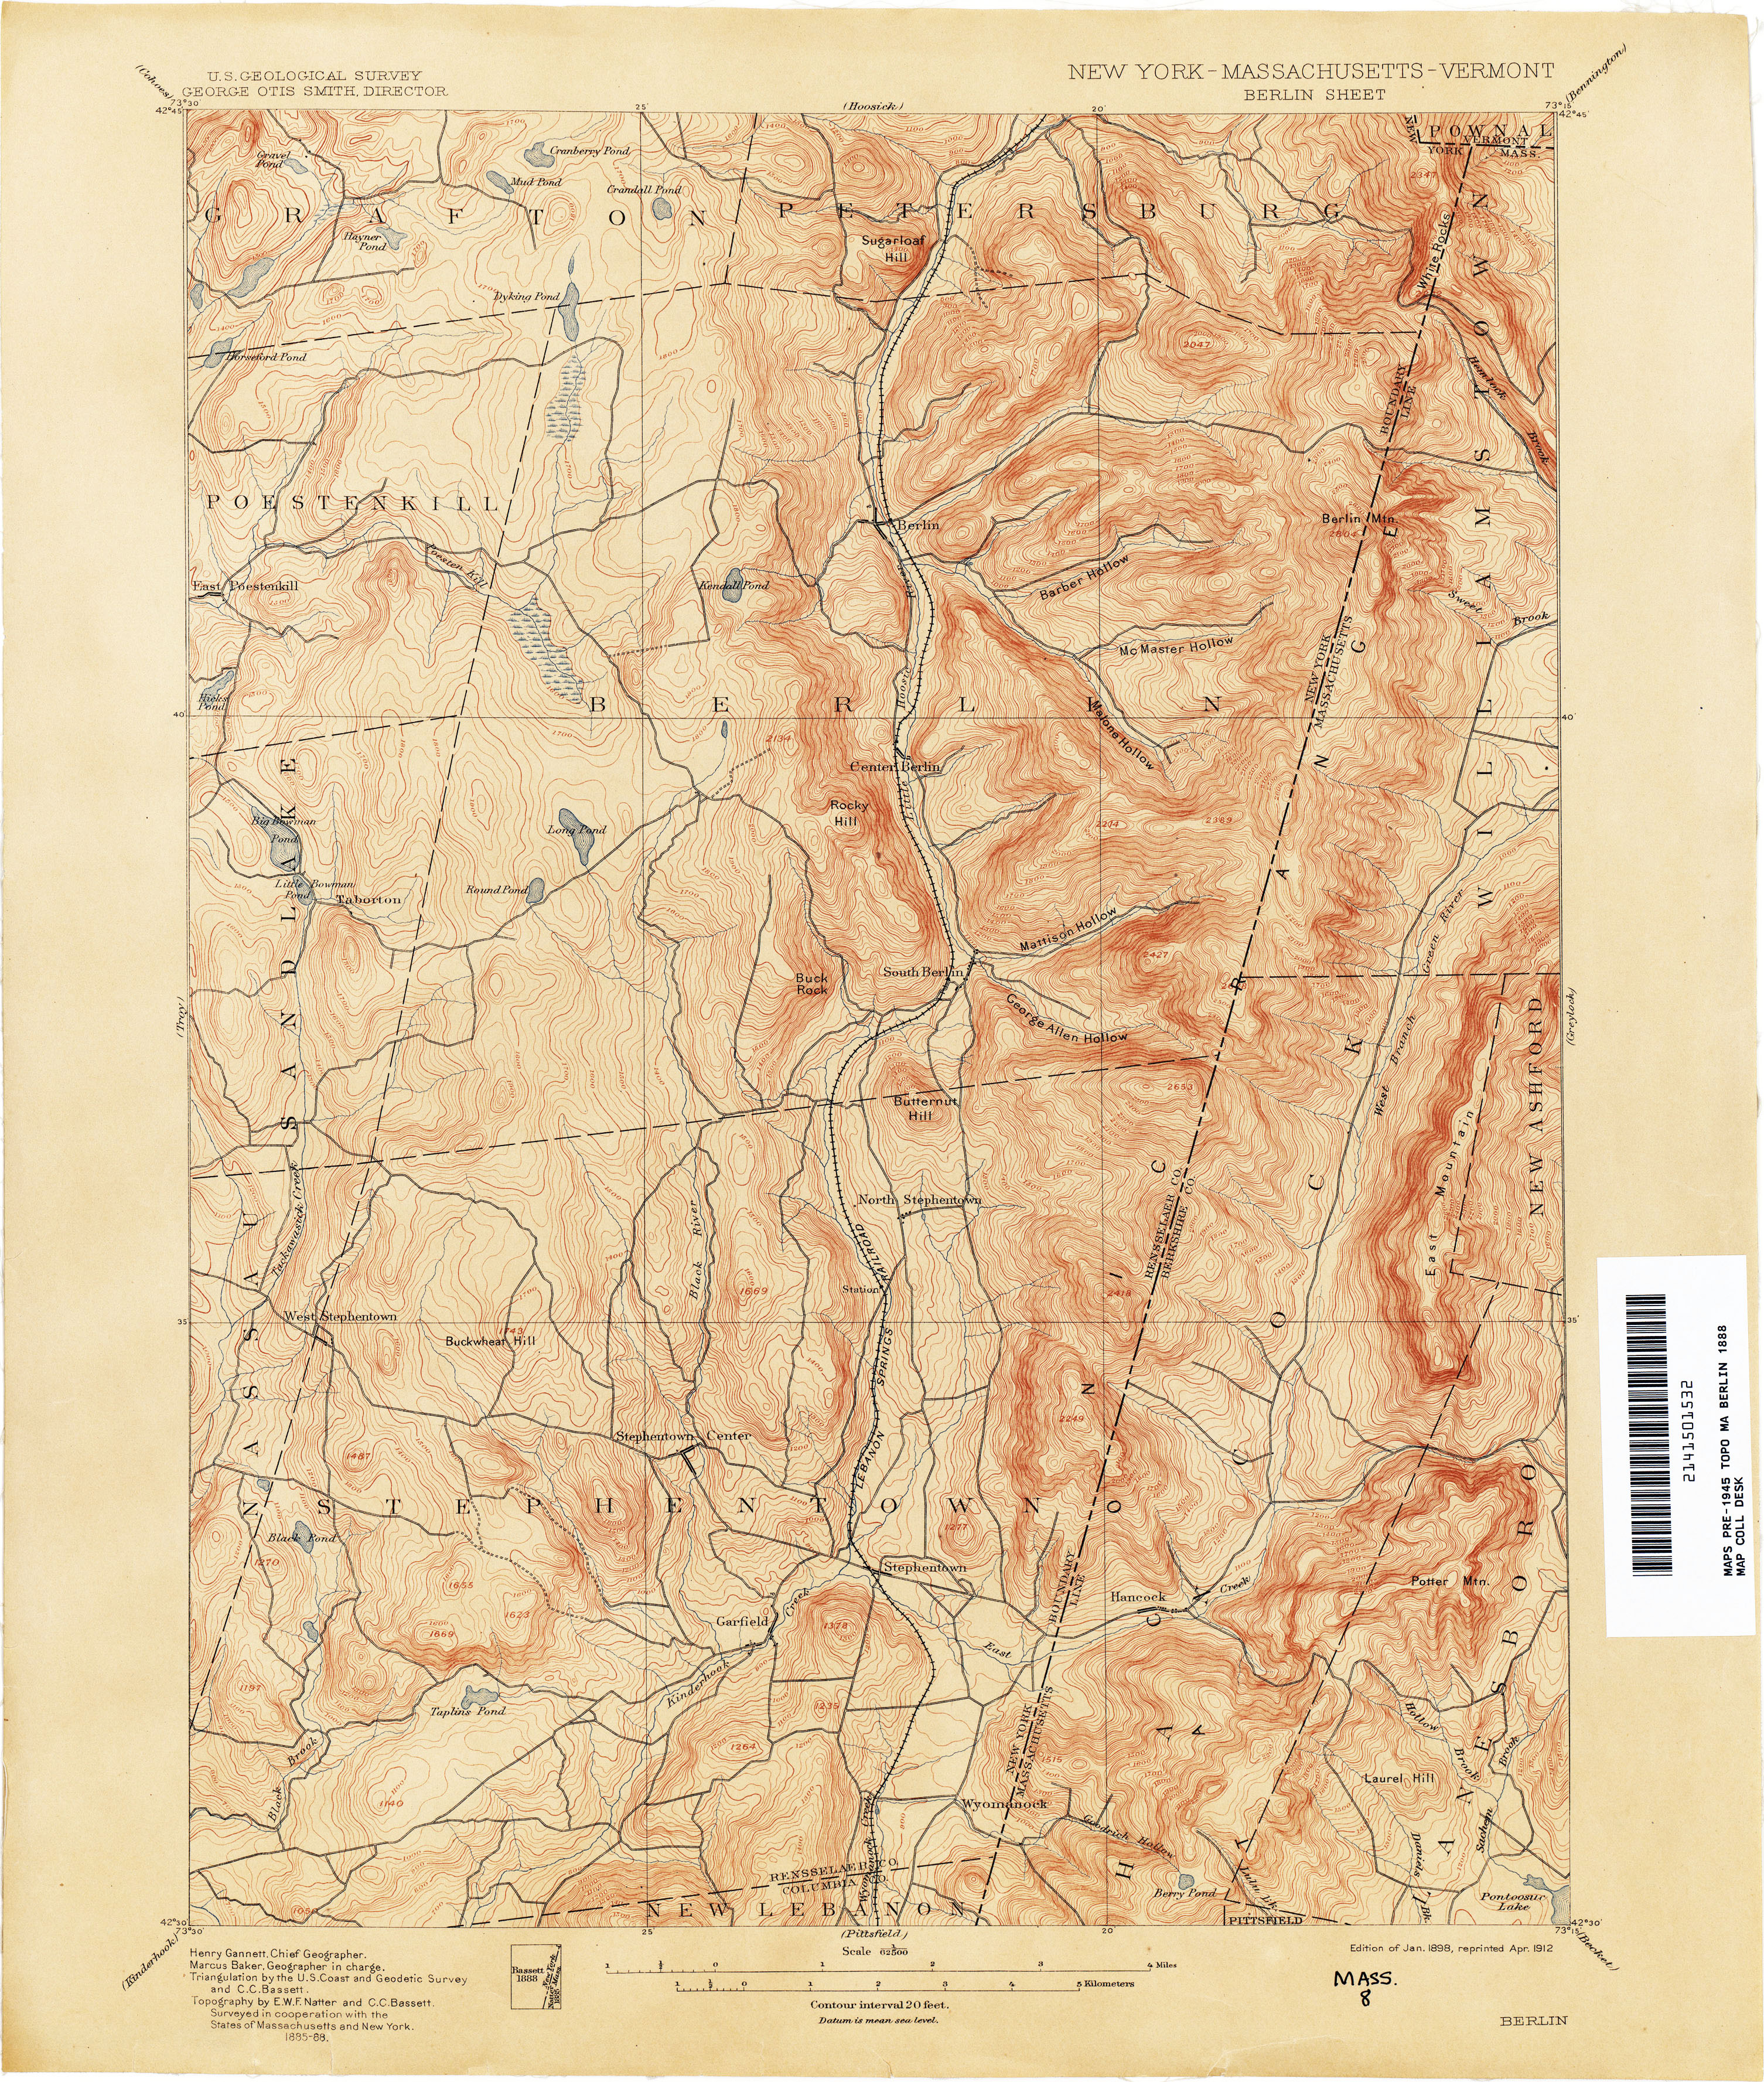 New York Topographic Maps PerryCastañeda Map Collection UT - New york vermont map